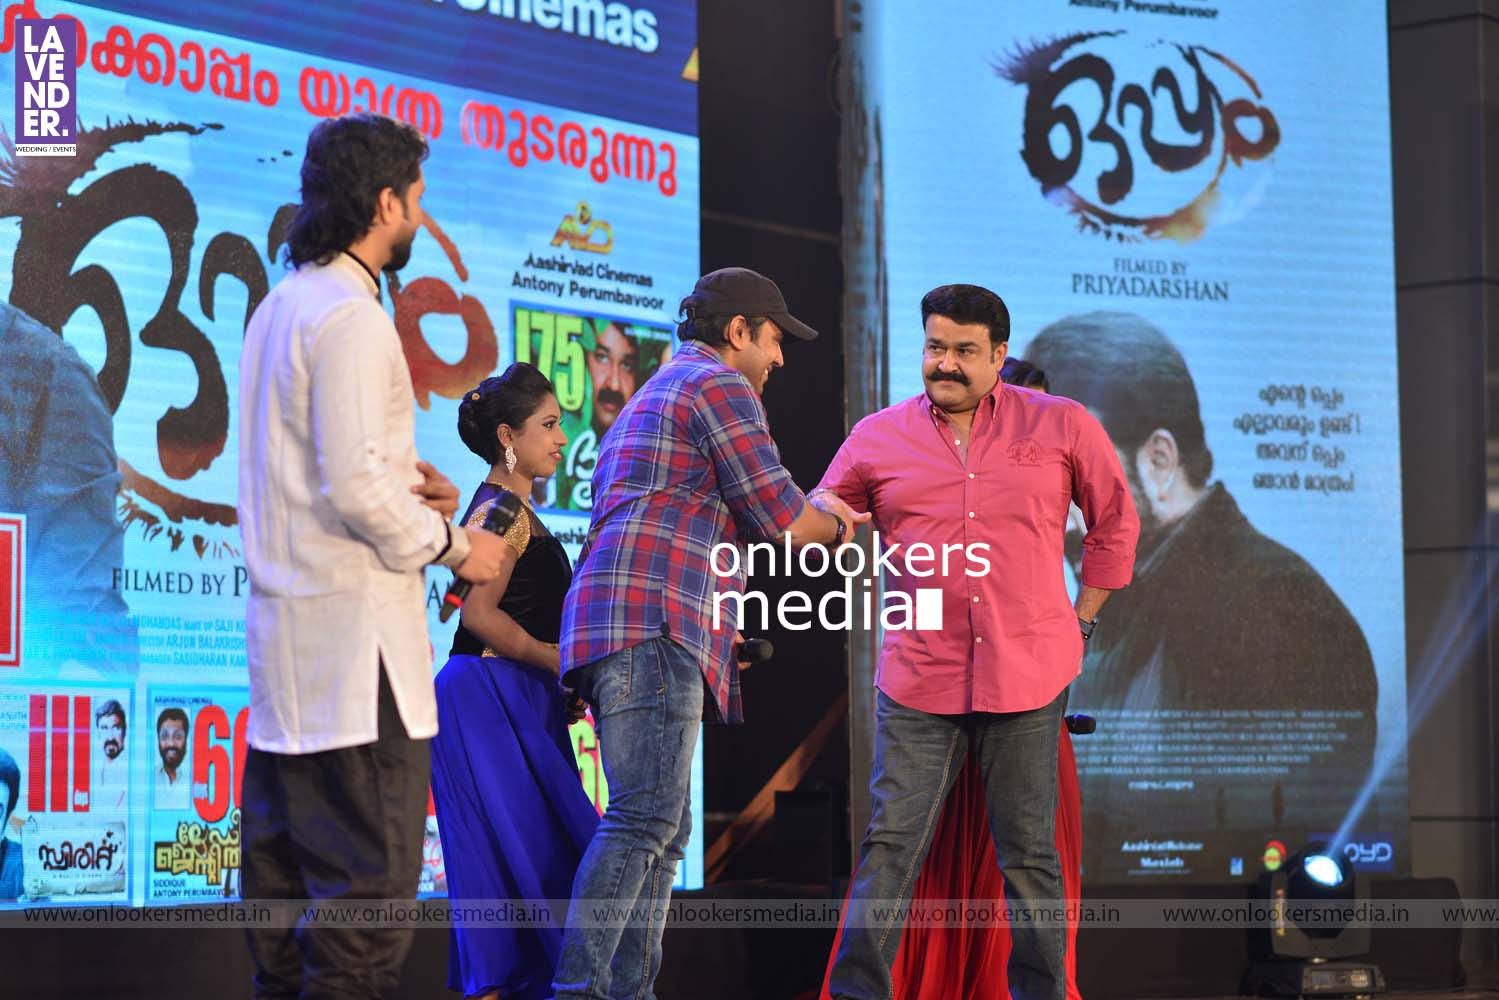 http://onlookersmedia.in/wp-content/uploads/2017/01/Oppam-100-Days-Celebration-Stills-Photos-115.jpg